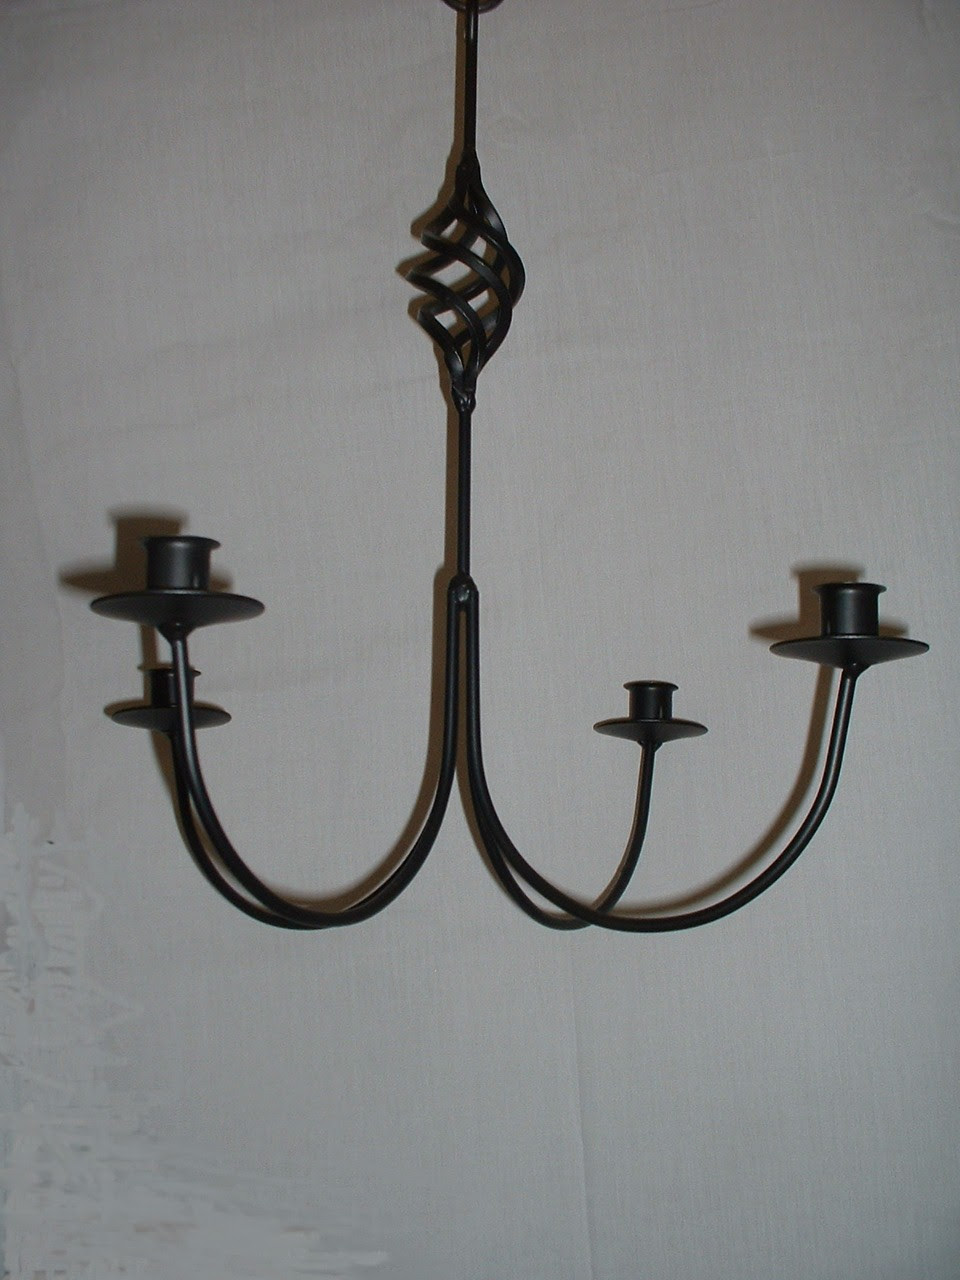 The Grand Belton 5 Arm Wrought Iron Candle Chandelier Bespoke Lighting Co Dinamic News